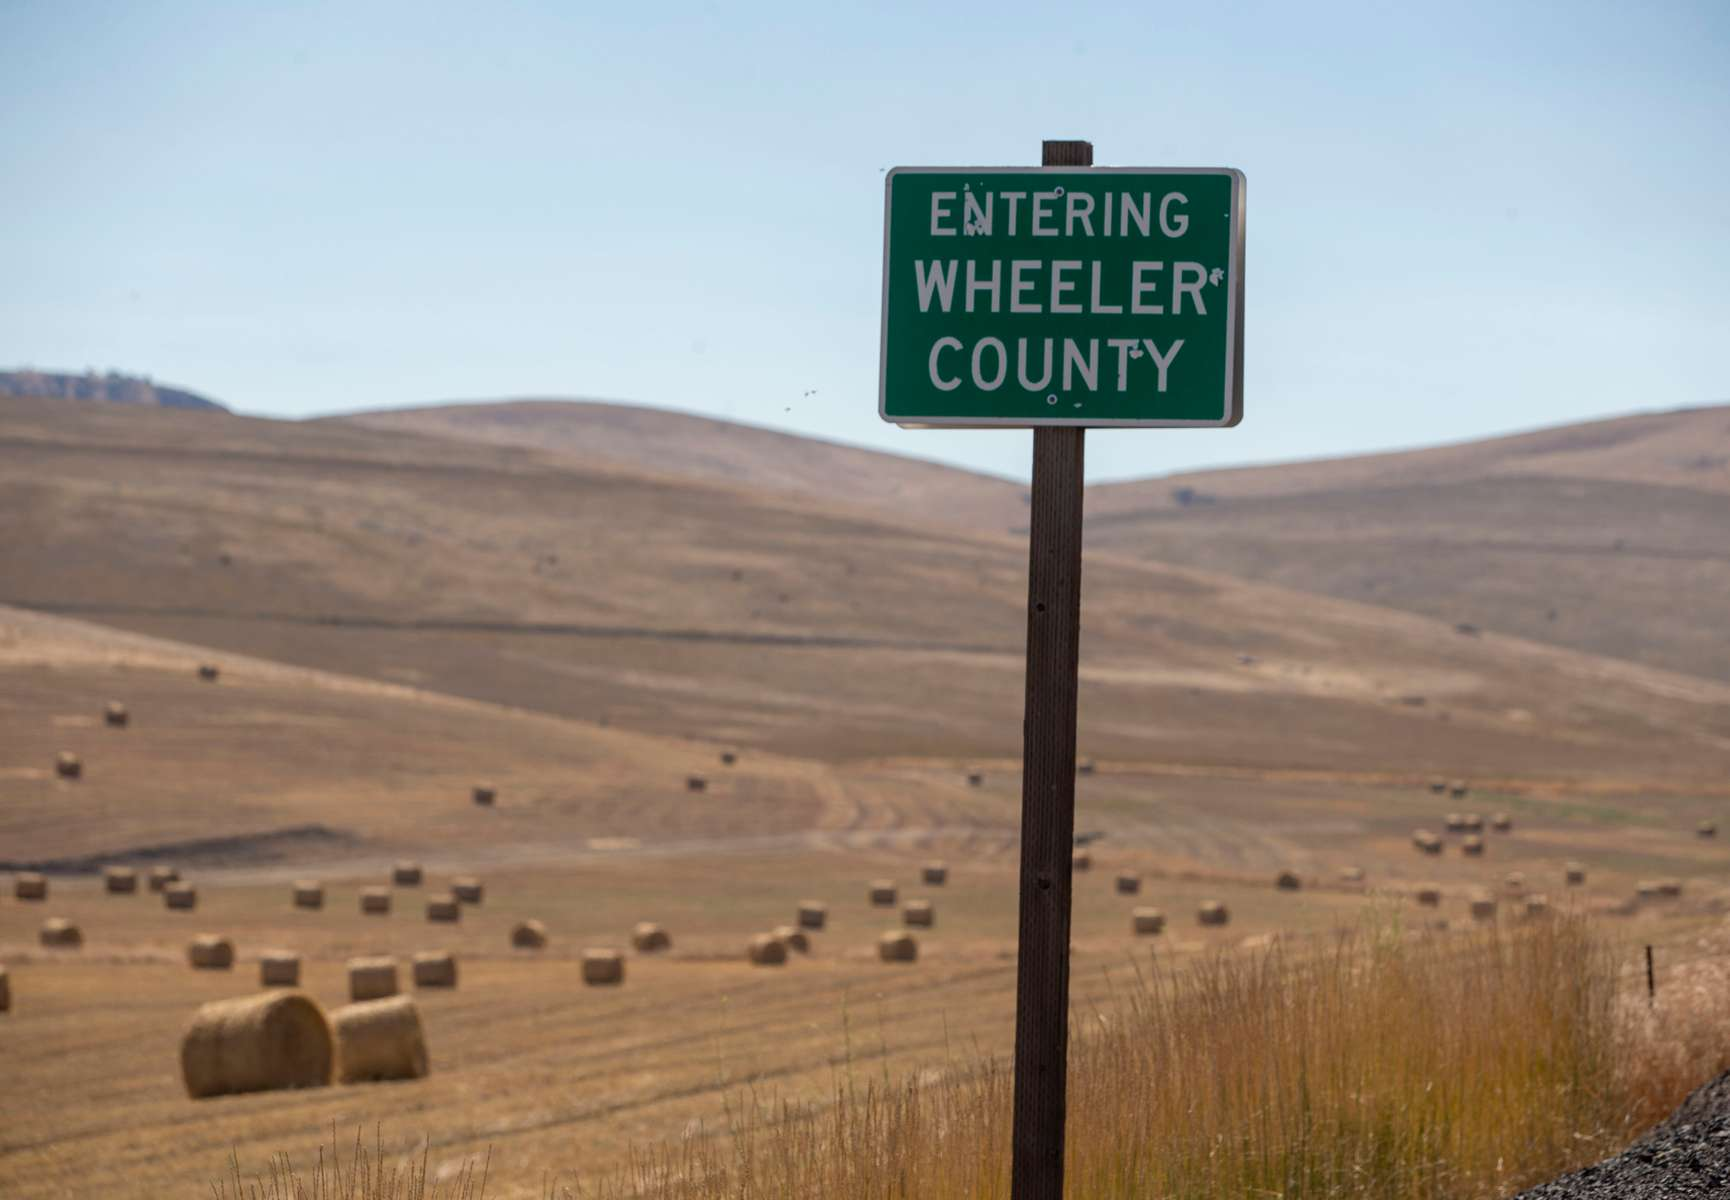 Wheeler County has the distinction of being one of ten counties in the United States without a case of coronavirus. The Wheeler County sign on Highway 19 greets visitors on May 3, 2020, near Fossil, Oregon.